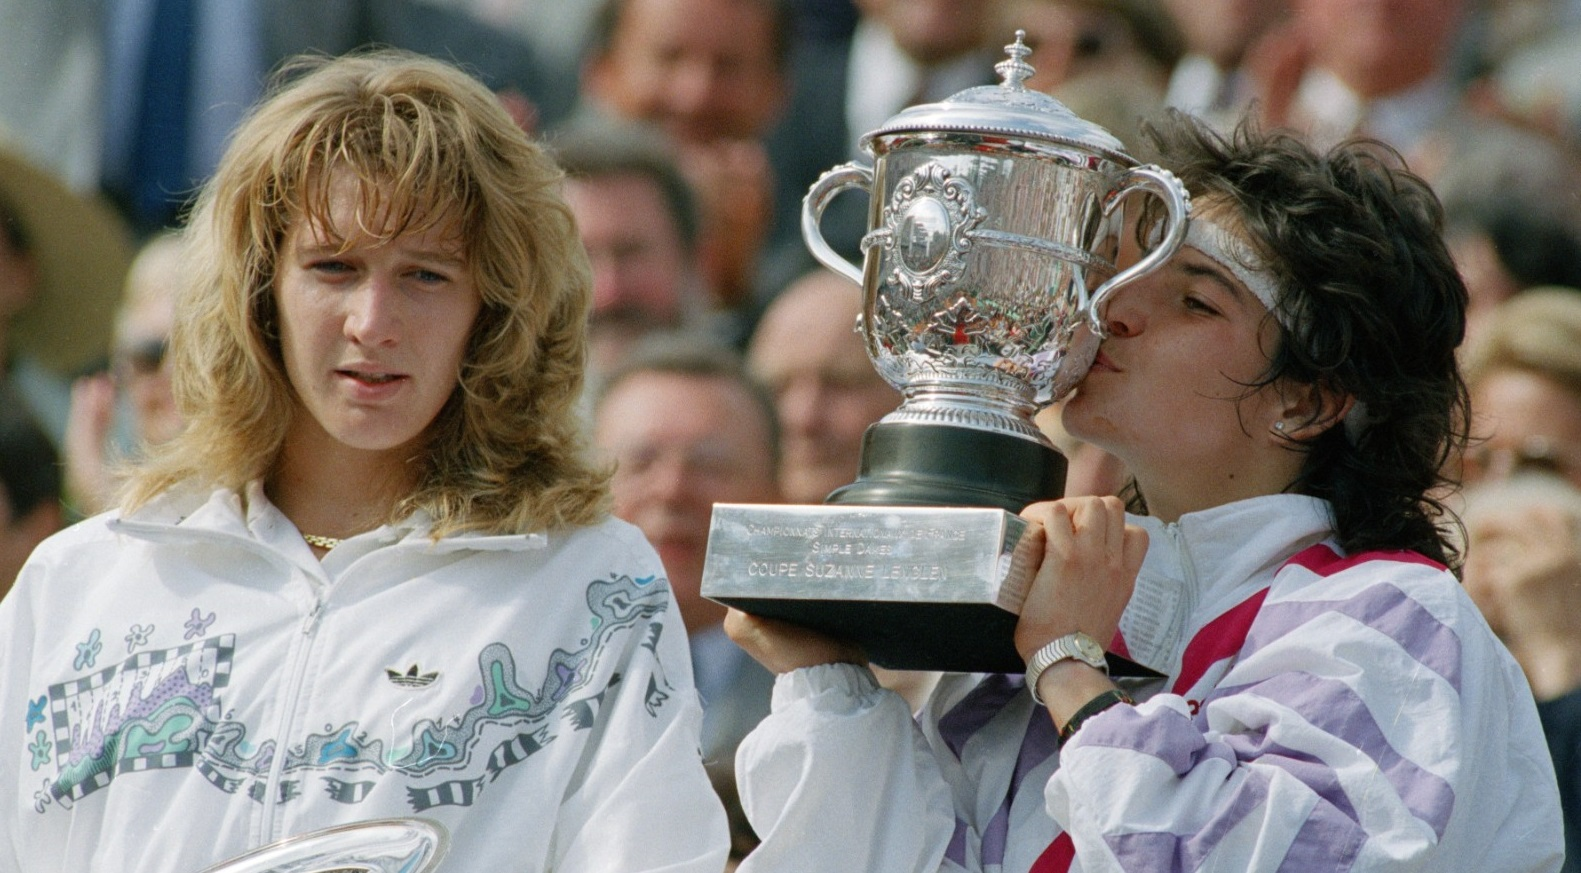 Meet The Tennis Champion Who Bested Steffi Graf At The French Open